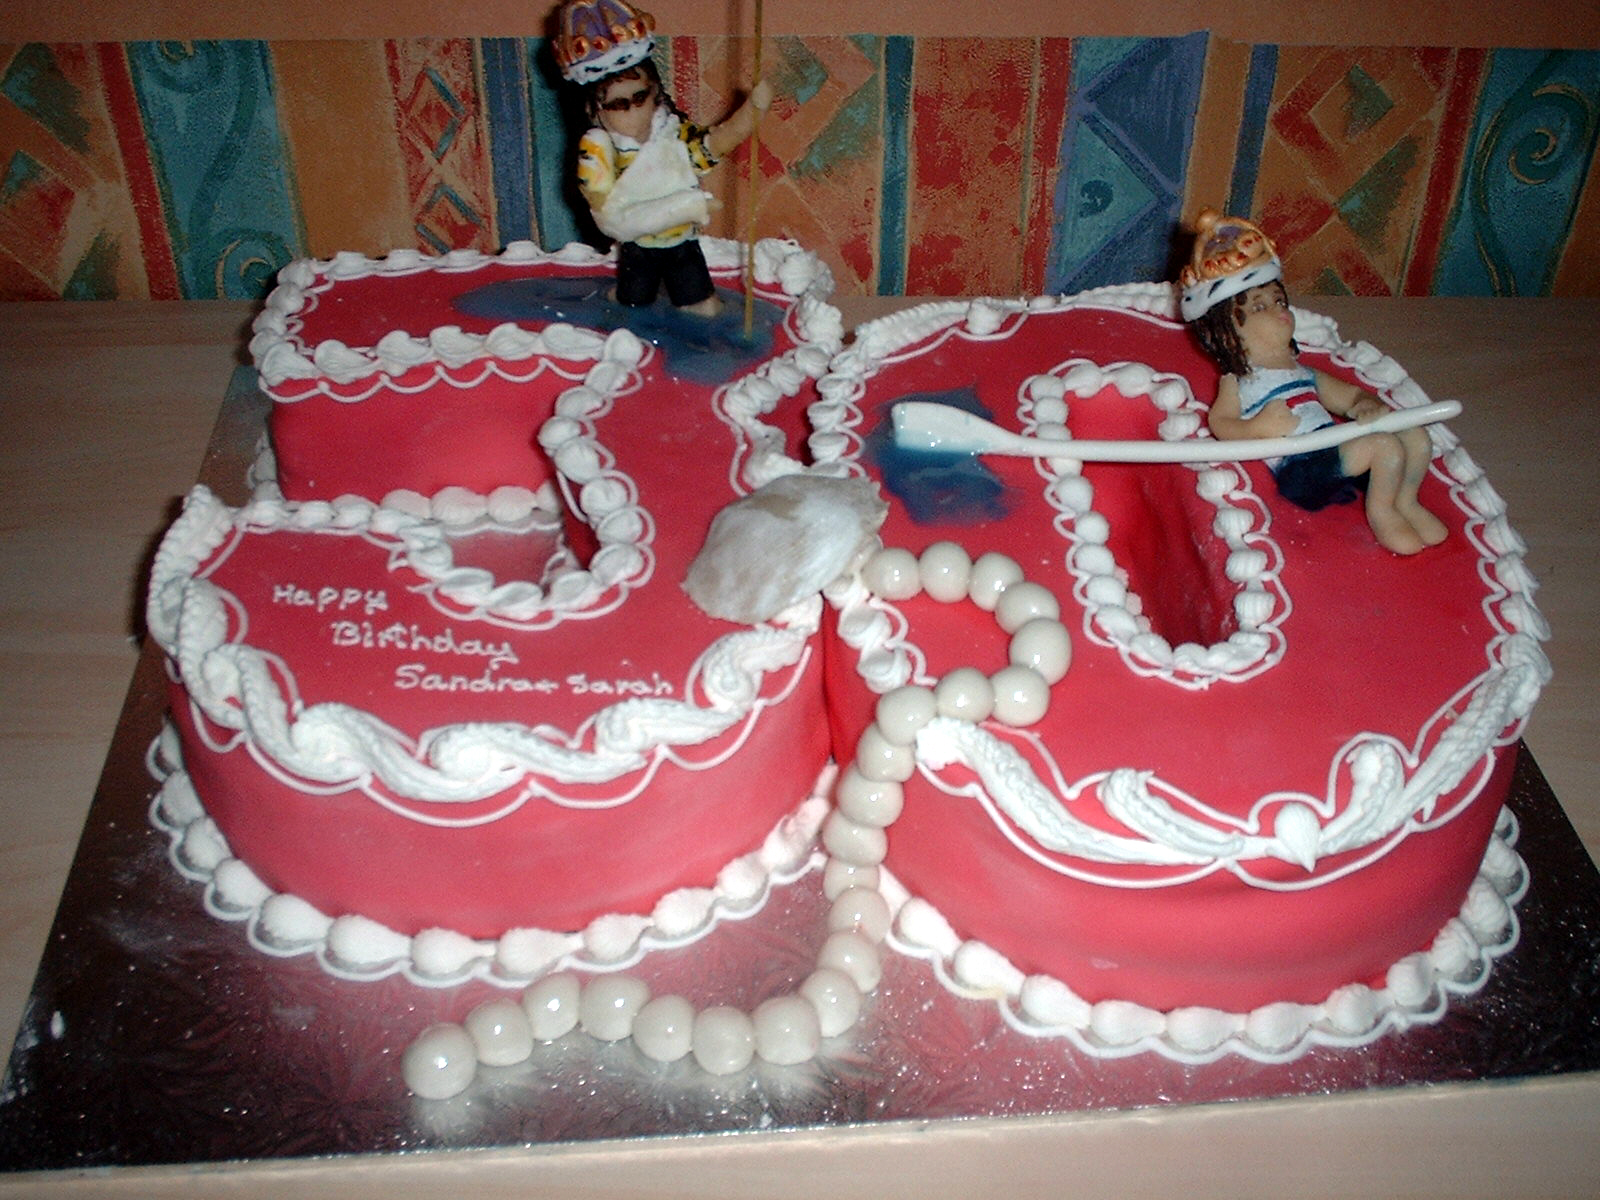 Special Day Cakes: Creative Ideas for 30th Birthday Cakes